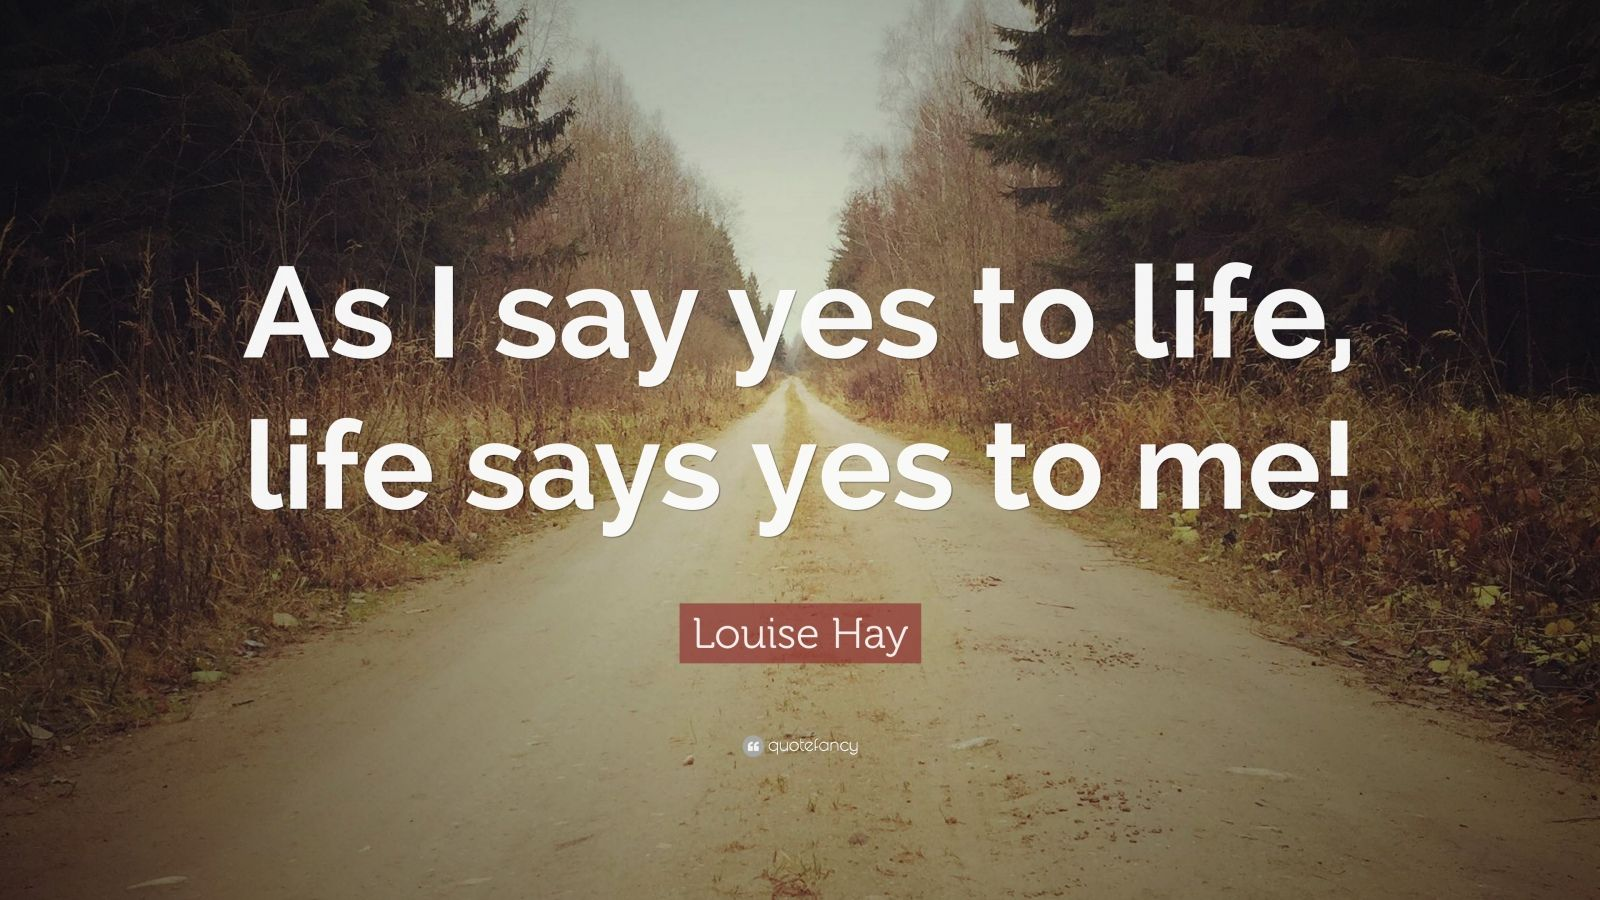 Conor Mcgregor Quote Wallpaper Louise Hay Quote As I Say Yes To Life Life Says Yes To